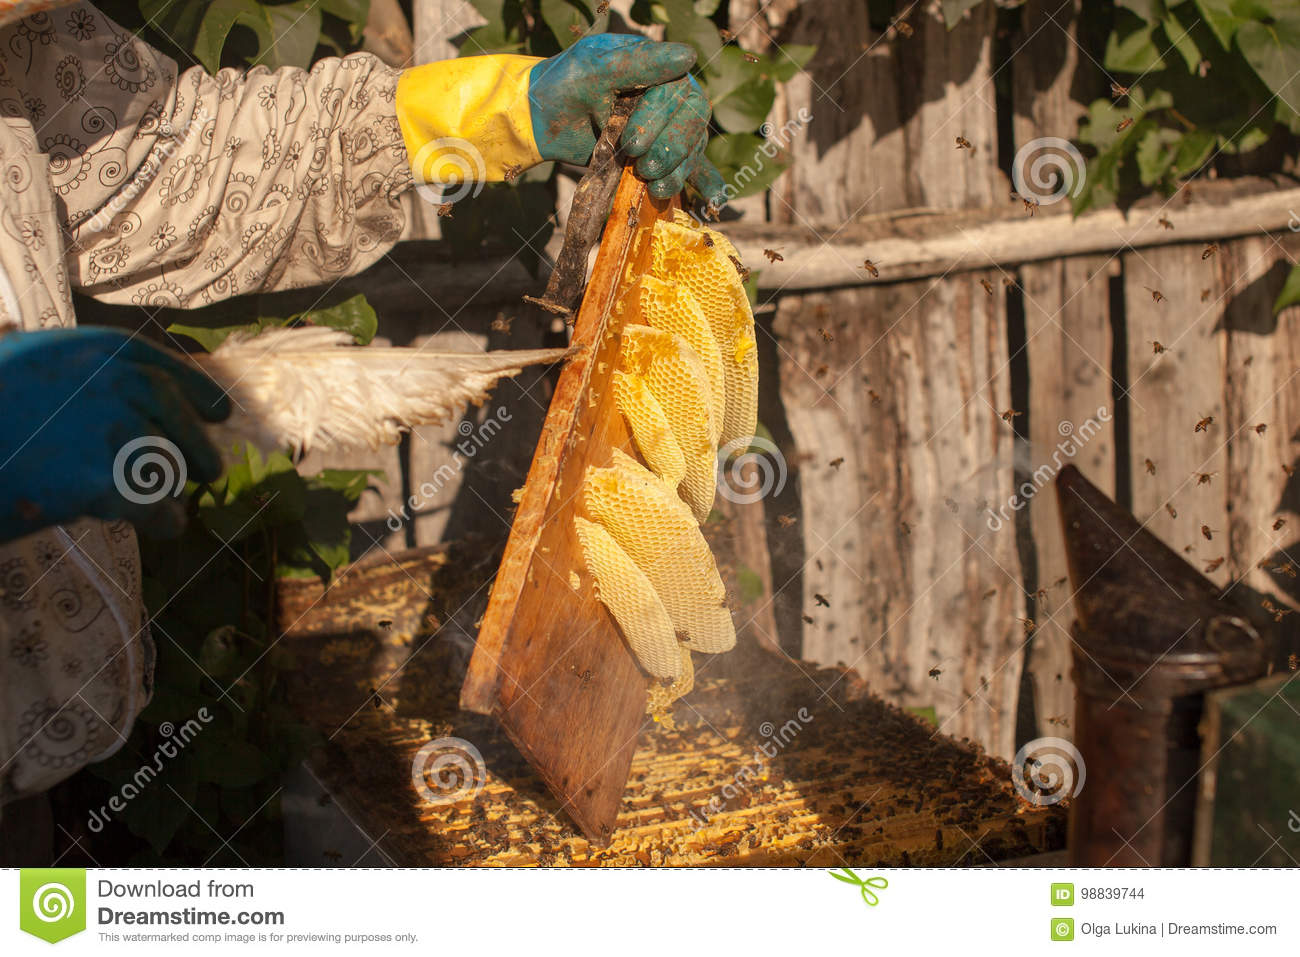 Bee smoker smoking in apiary copyspace seasonal honey bees beekeeping farming organic production producing concept.